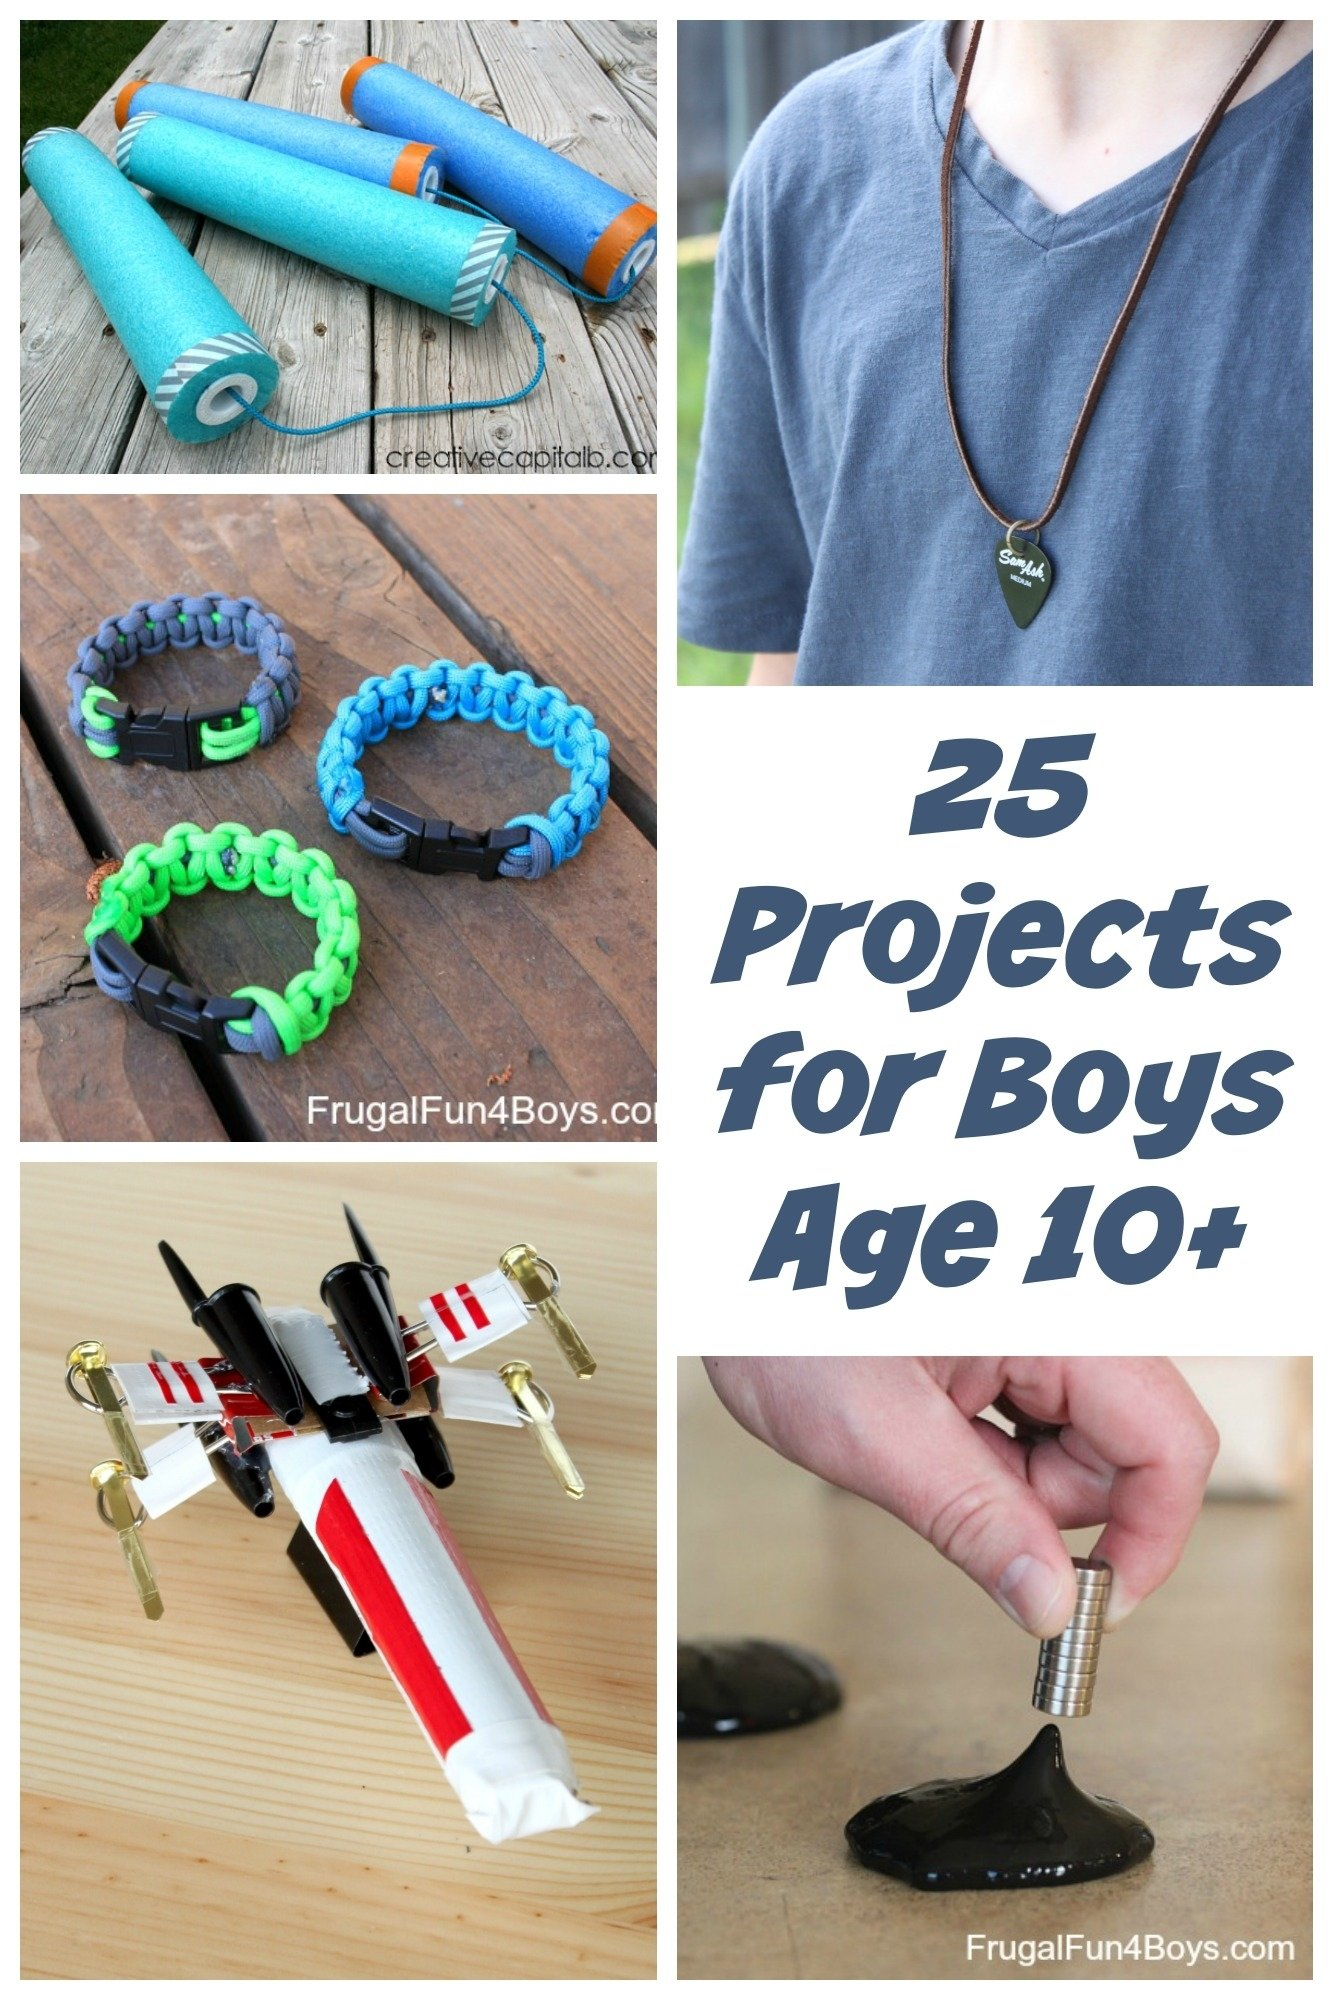 10 Pretty Craft Ideas For Teenage Girls 25 awesome projects for tween and teen boys ages 10 and up 1 2020